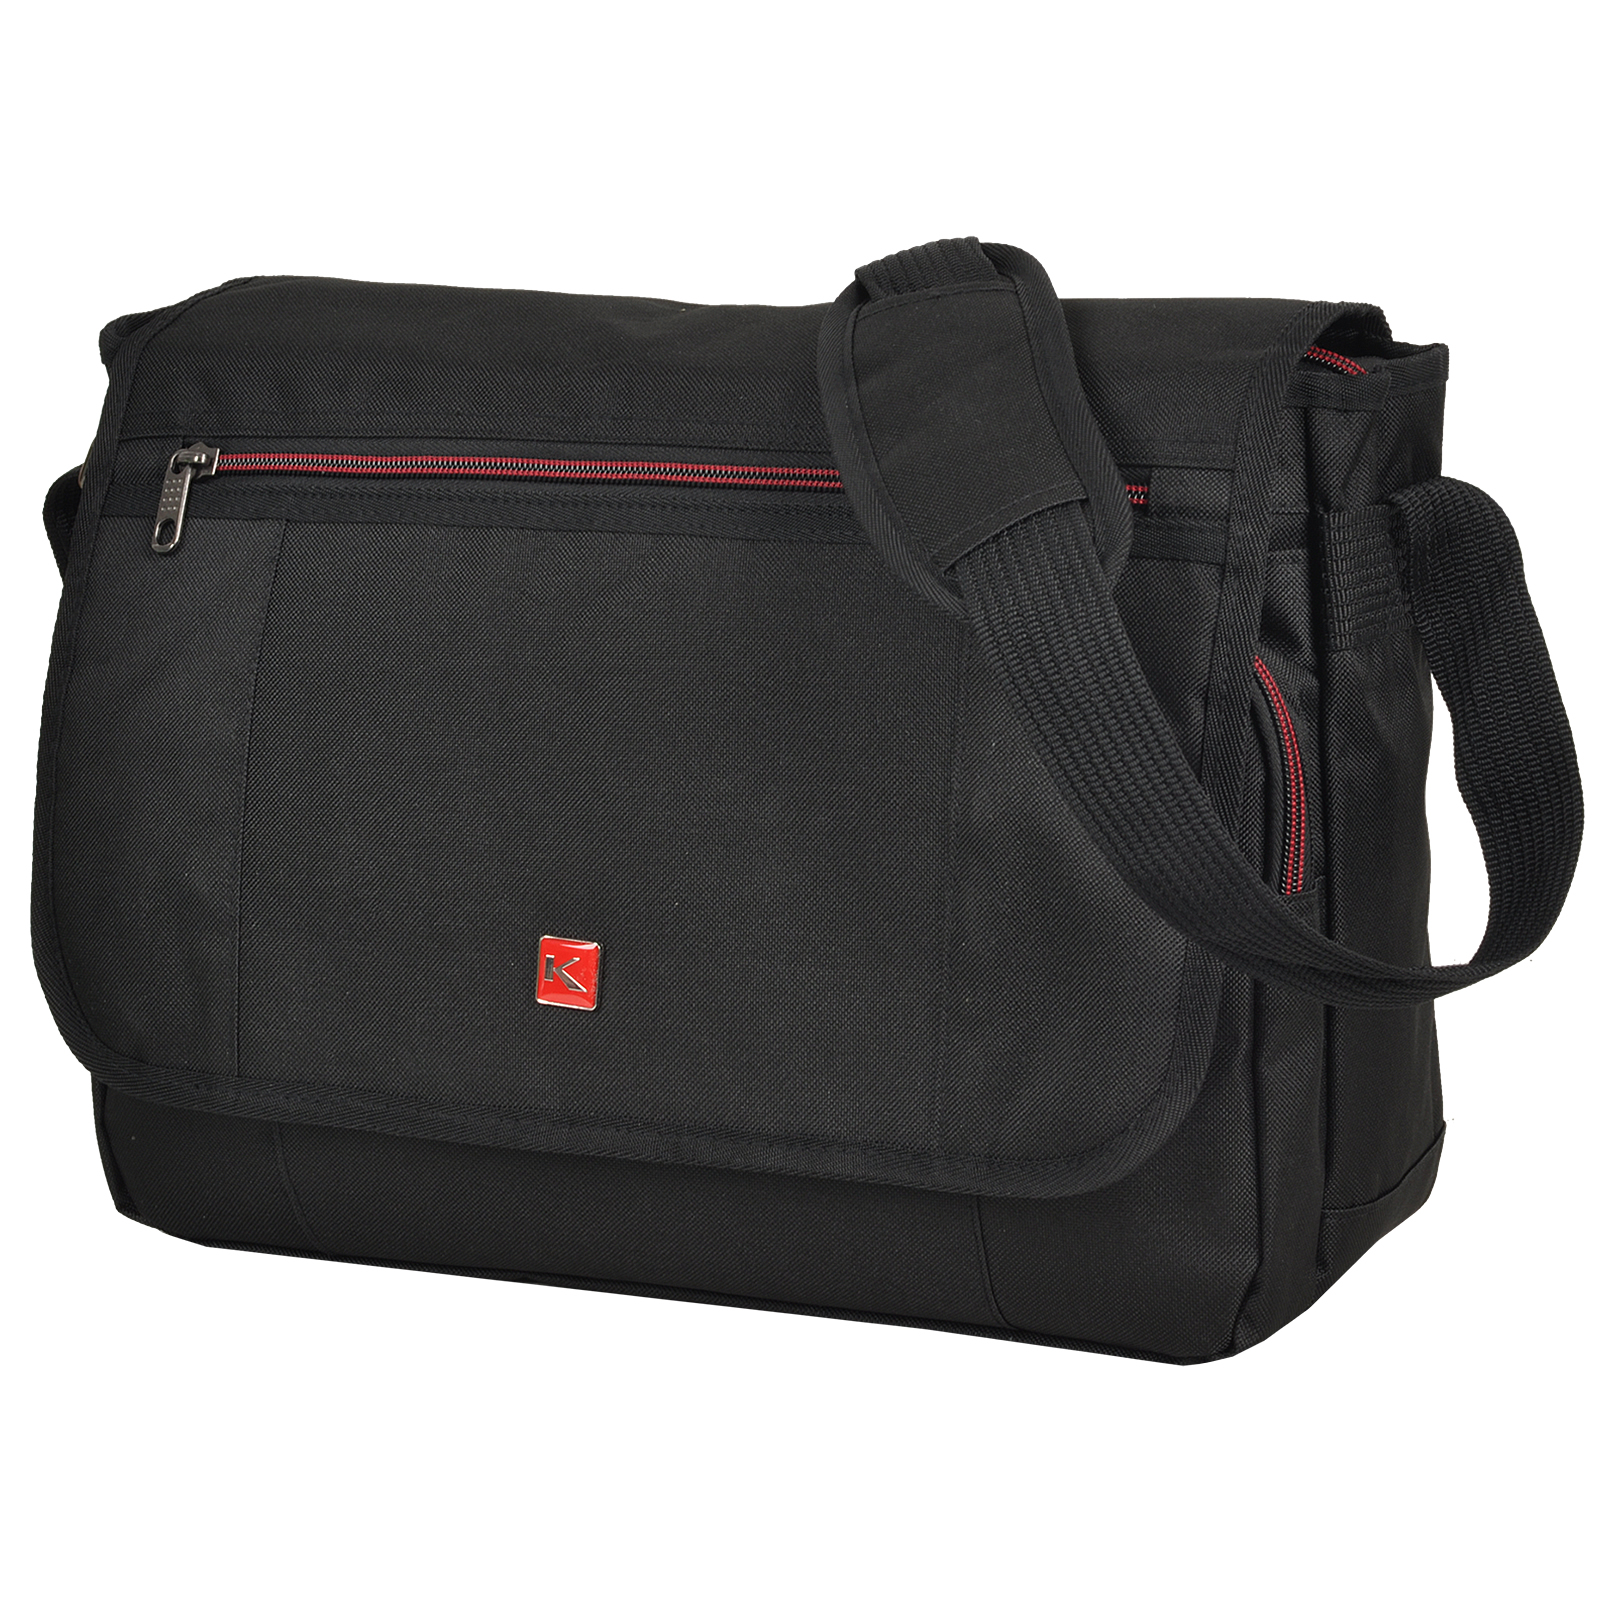 c462ed84a2b87 Umhängetasche Keanu by Marc Kerner Herren Laptop Messenger Bag ...